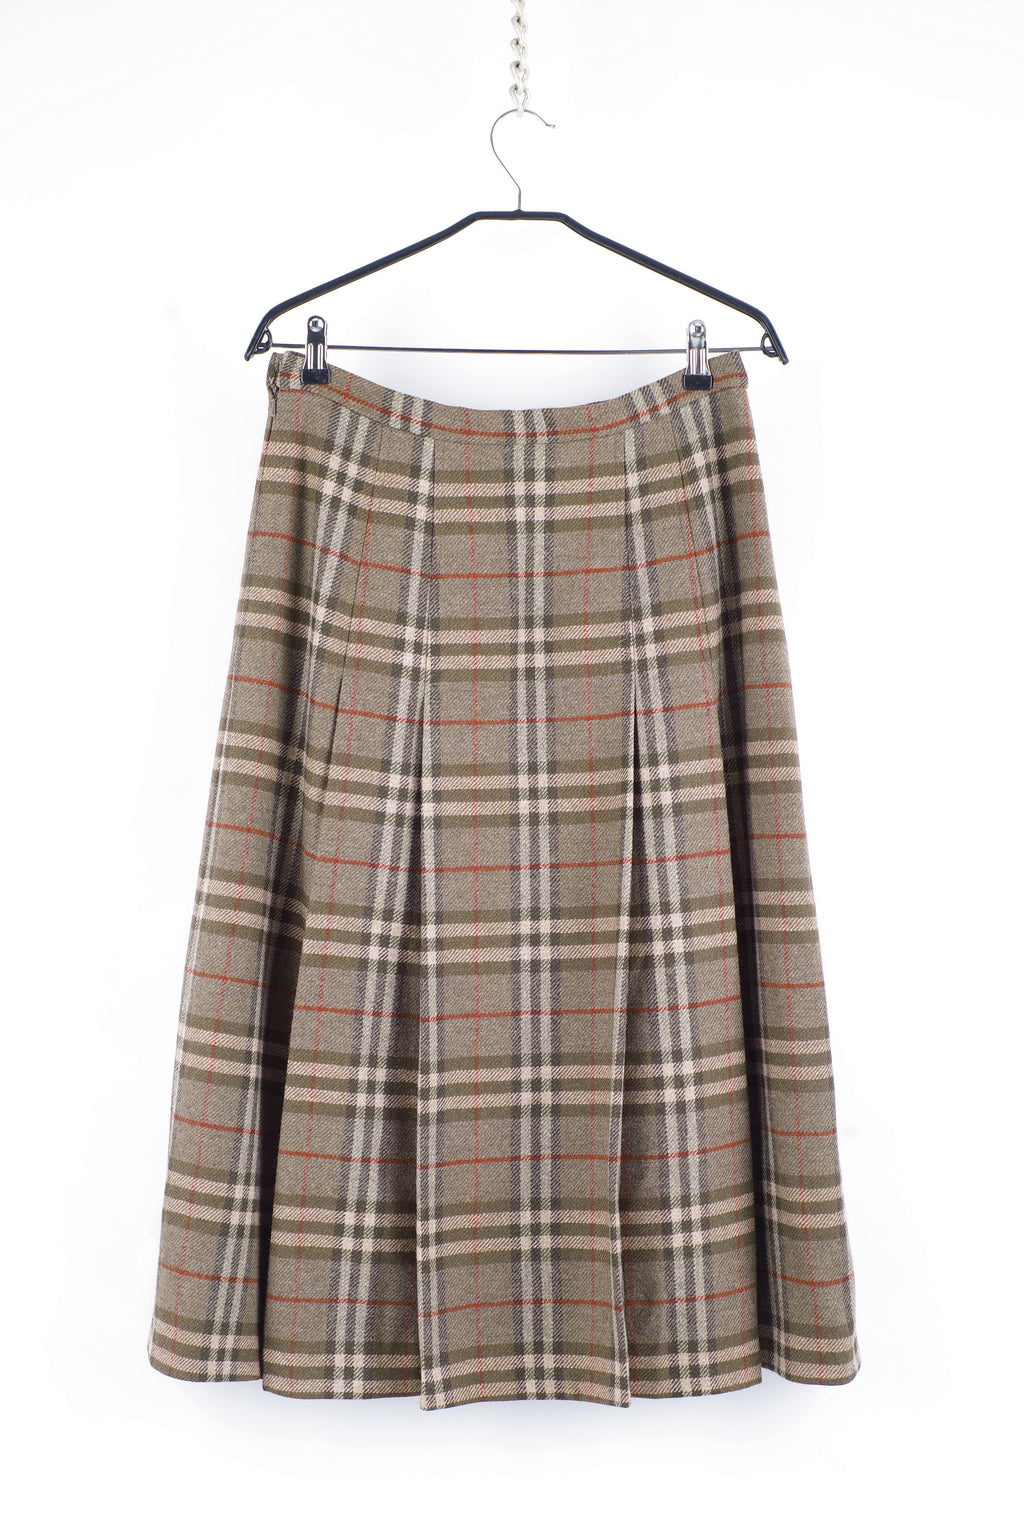 Burberry Vintage Wool Khaki Brown Plaid Pleated Midi Skirt, L